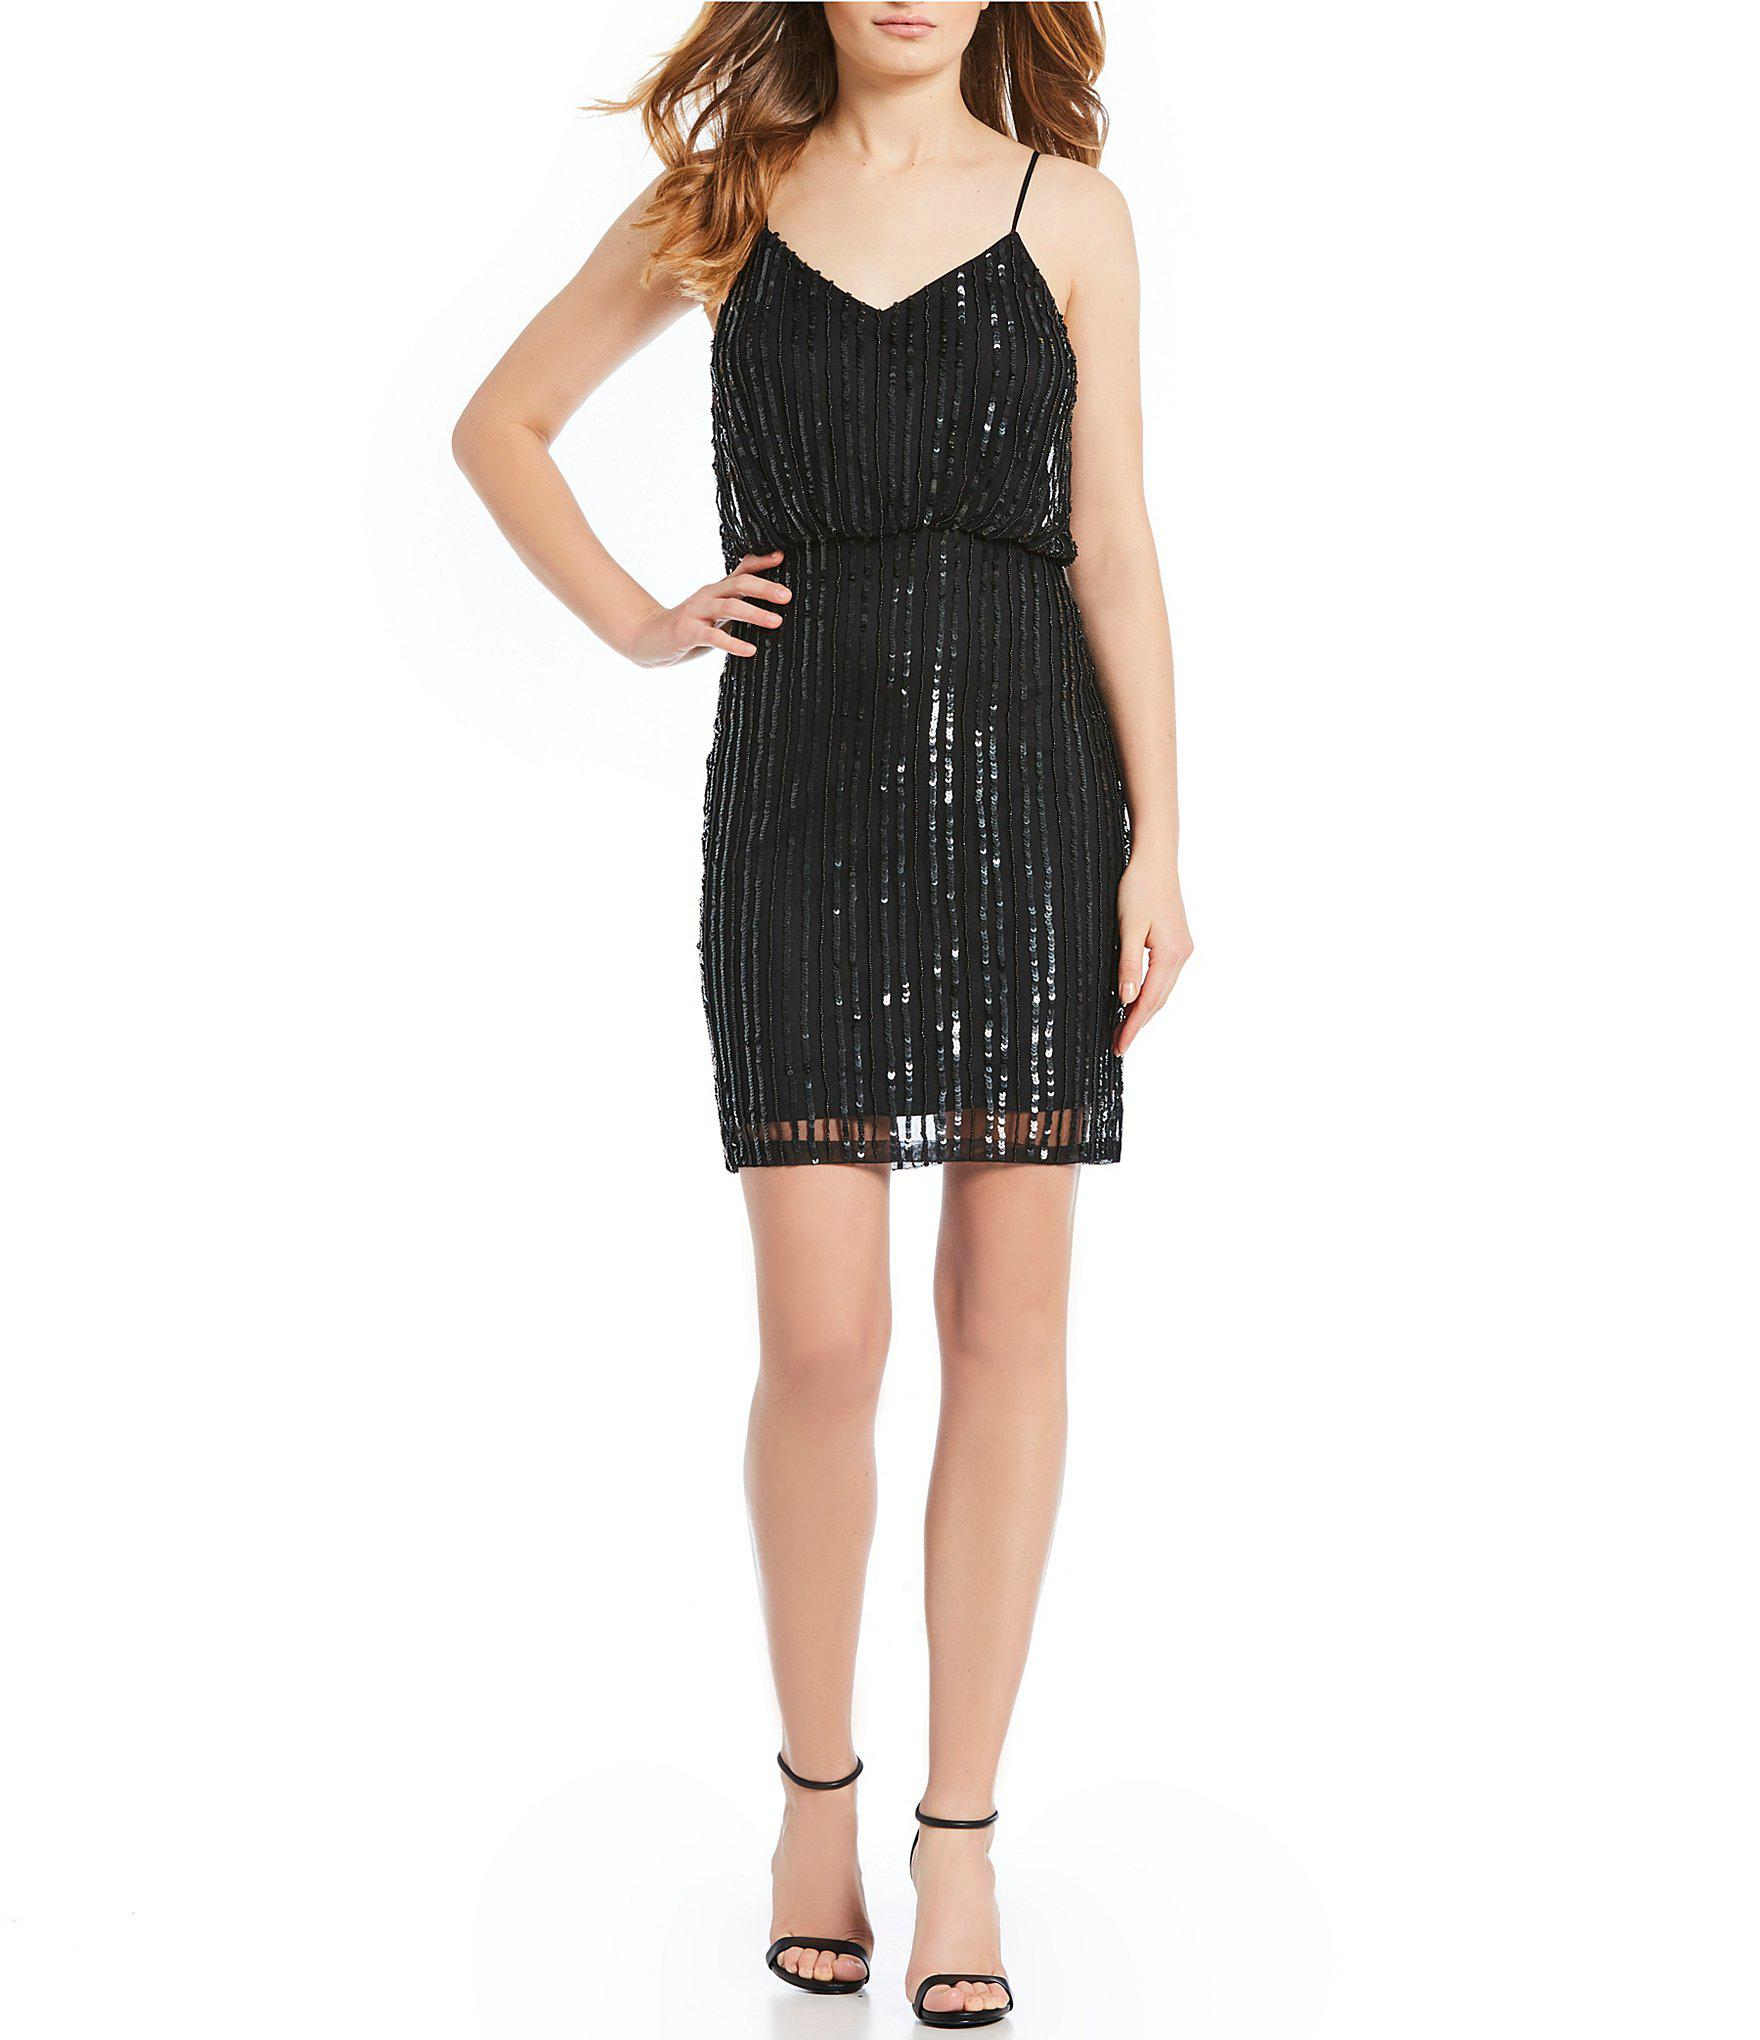 a8b49ce1d755 French Connection Aster Shine Striped Sequin Blouson Dress in Black ...